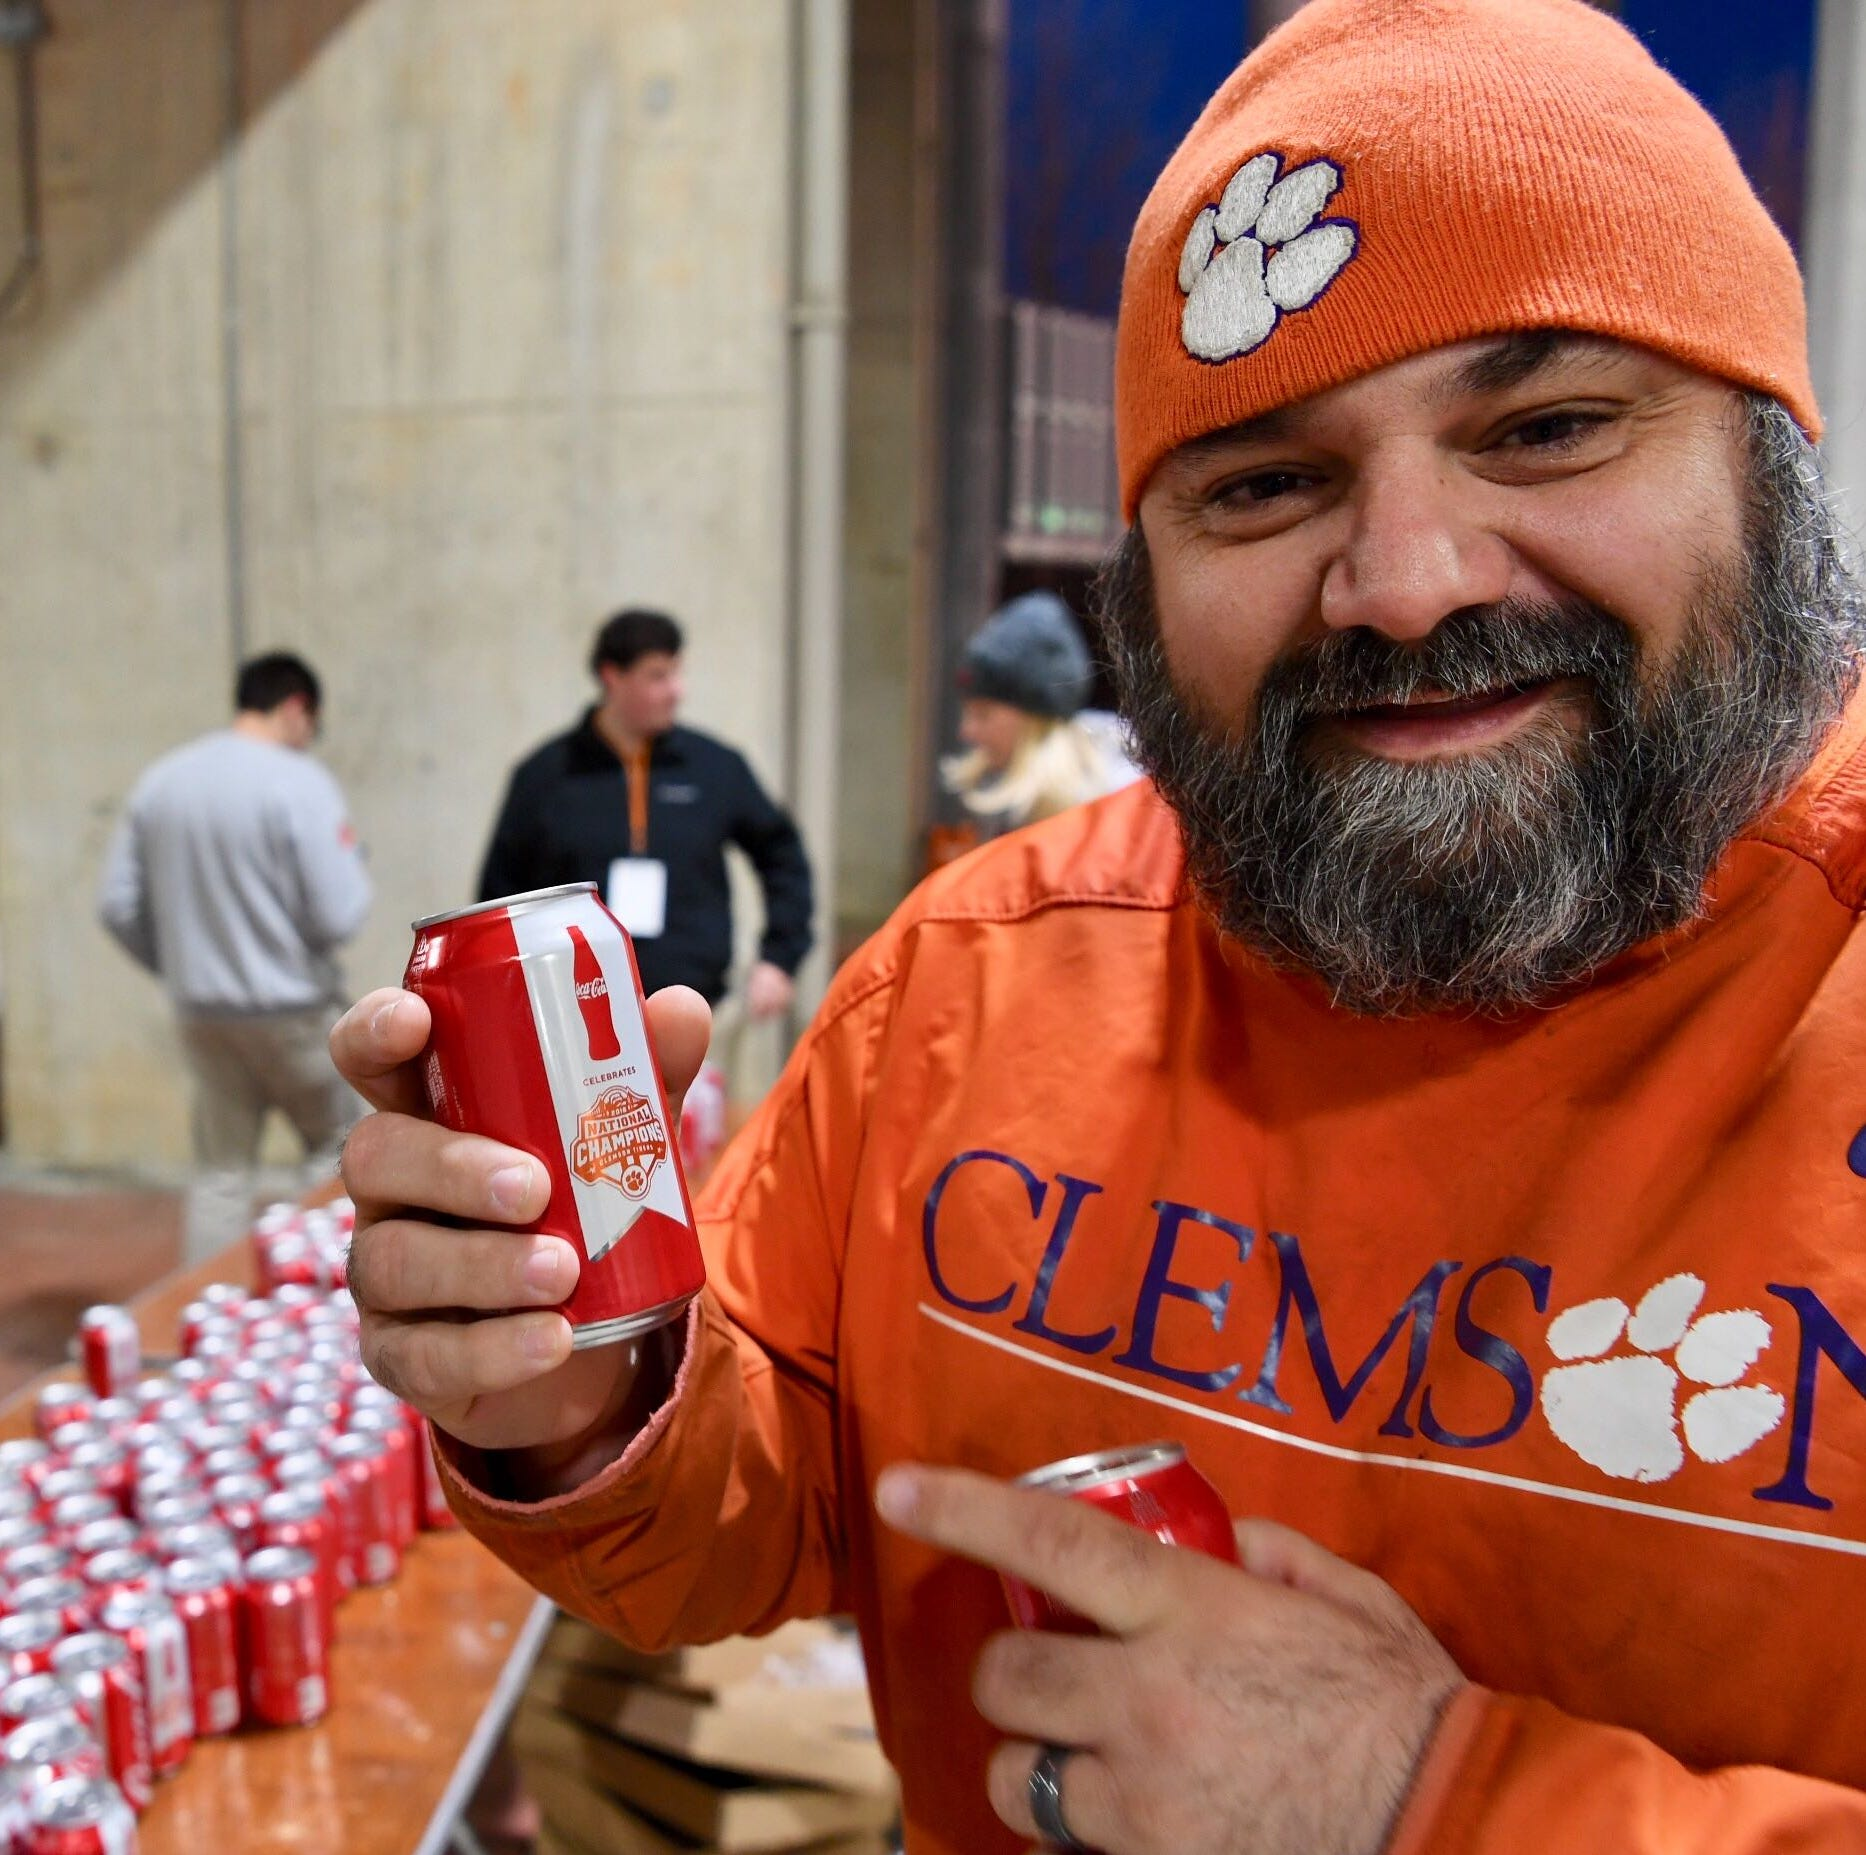 Coca-Cola releases Clemson football national championship can. Here's how to get them.